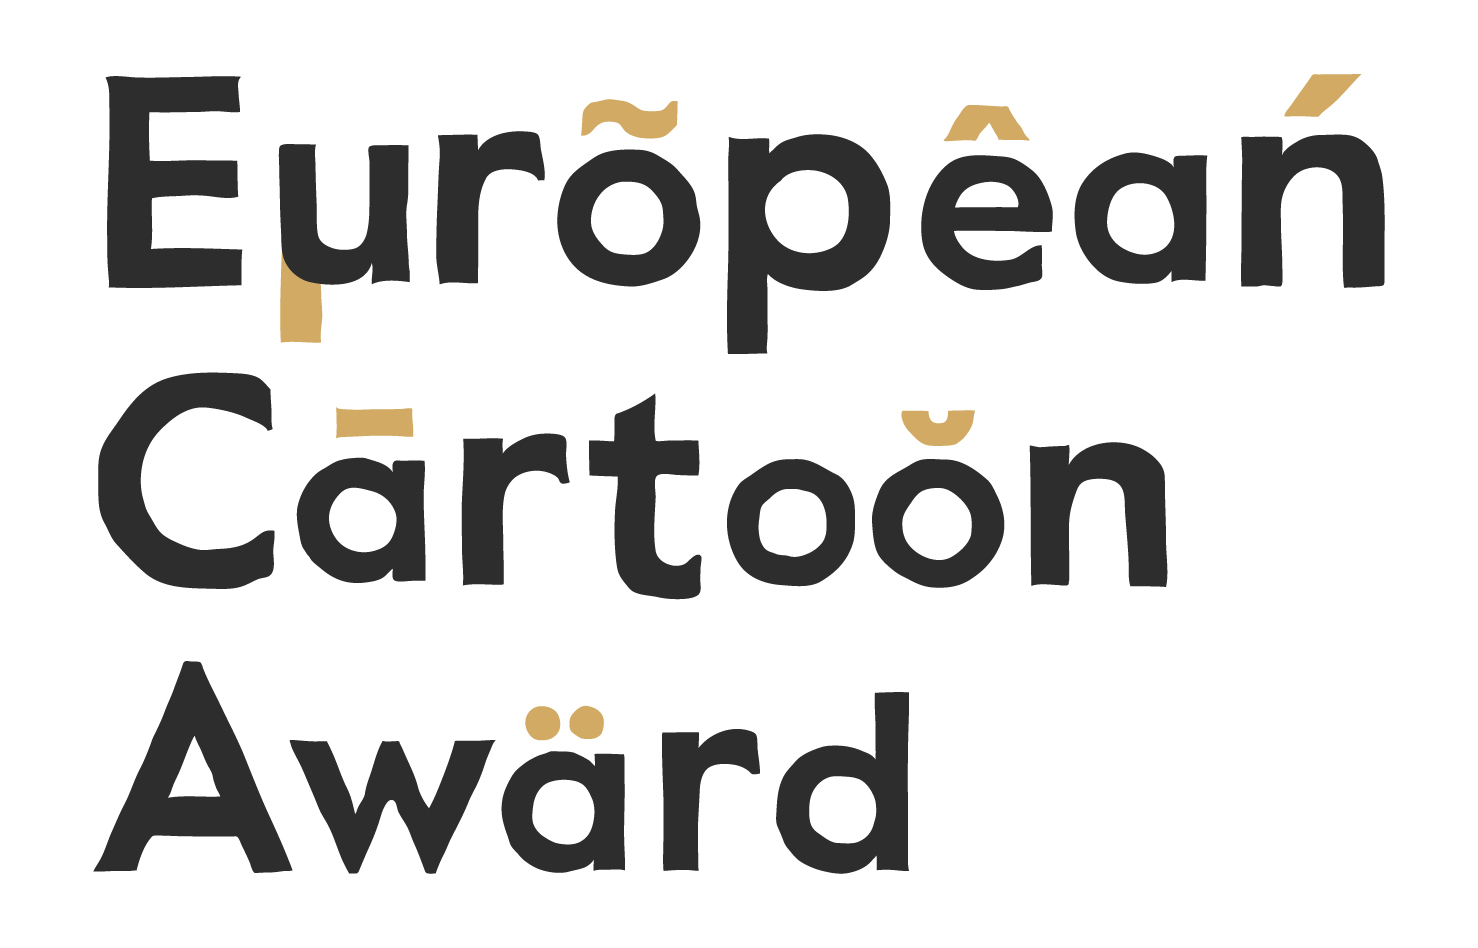 Press release: we proudly present the shortlist of the European Cartoon Award!